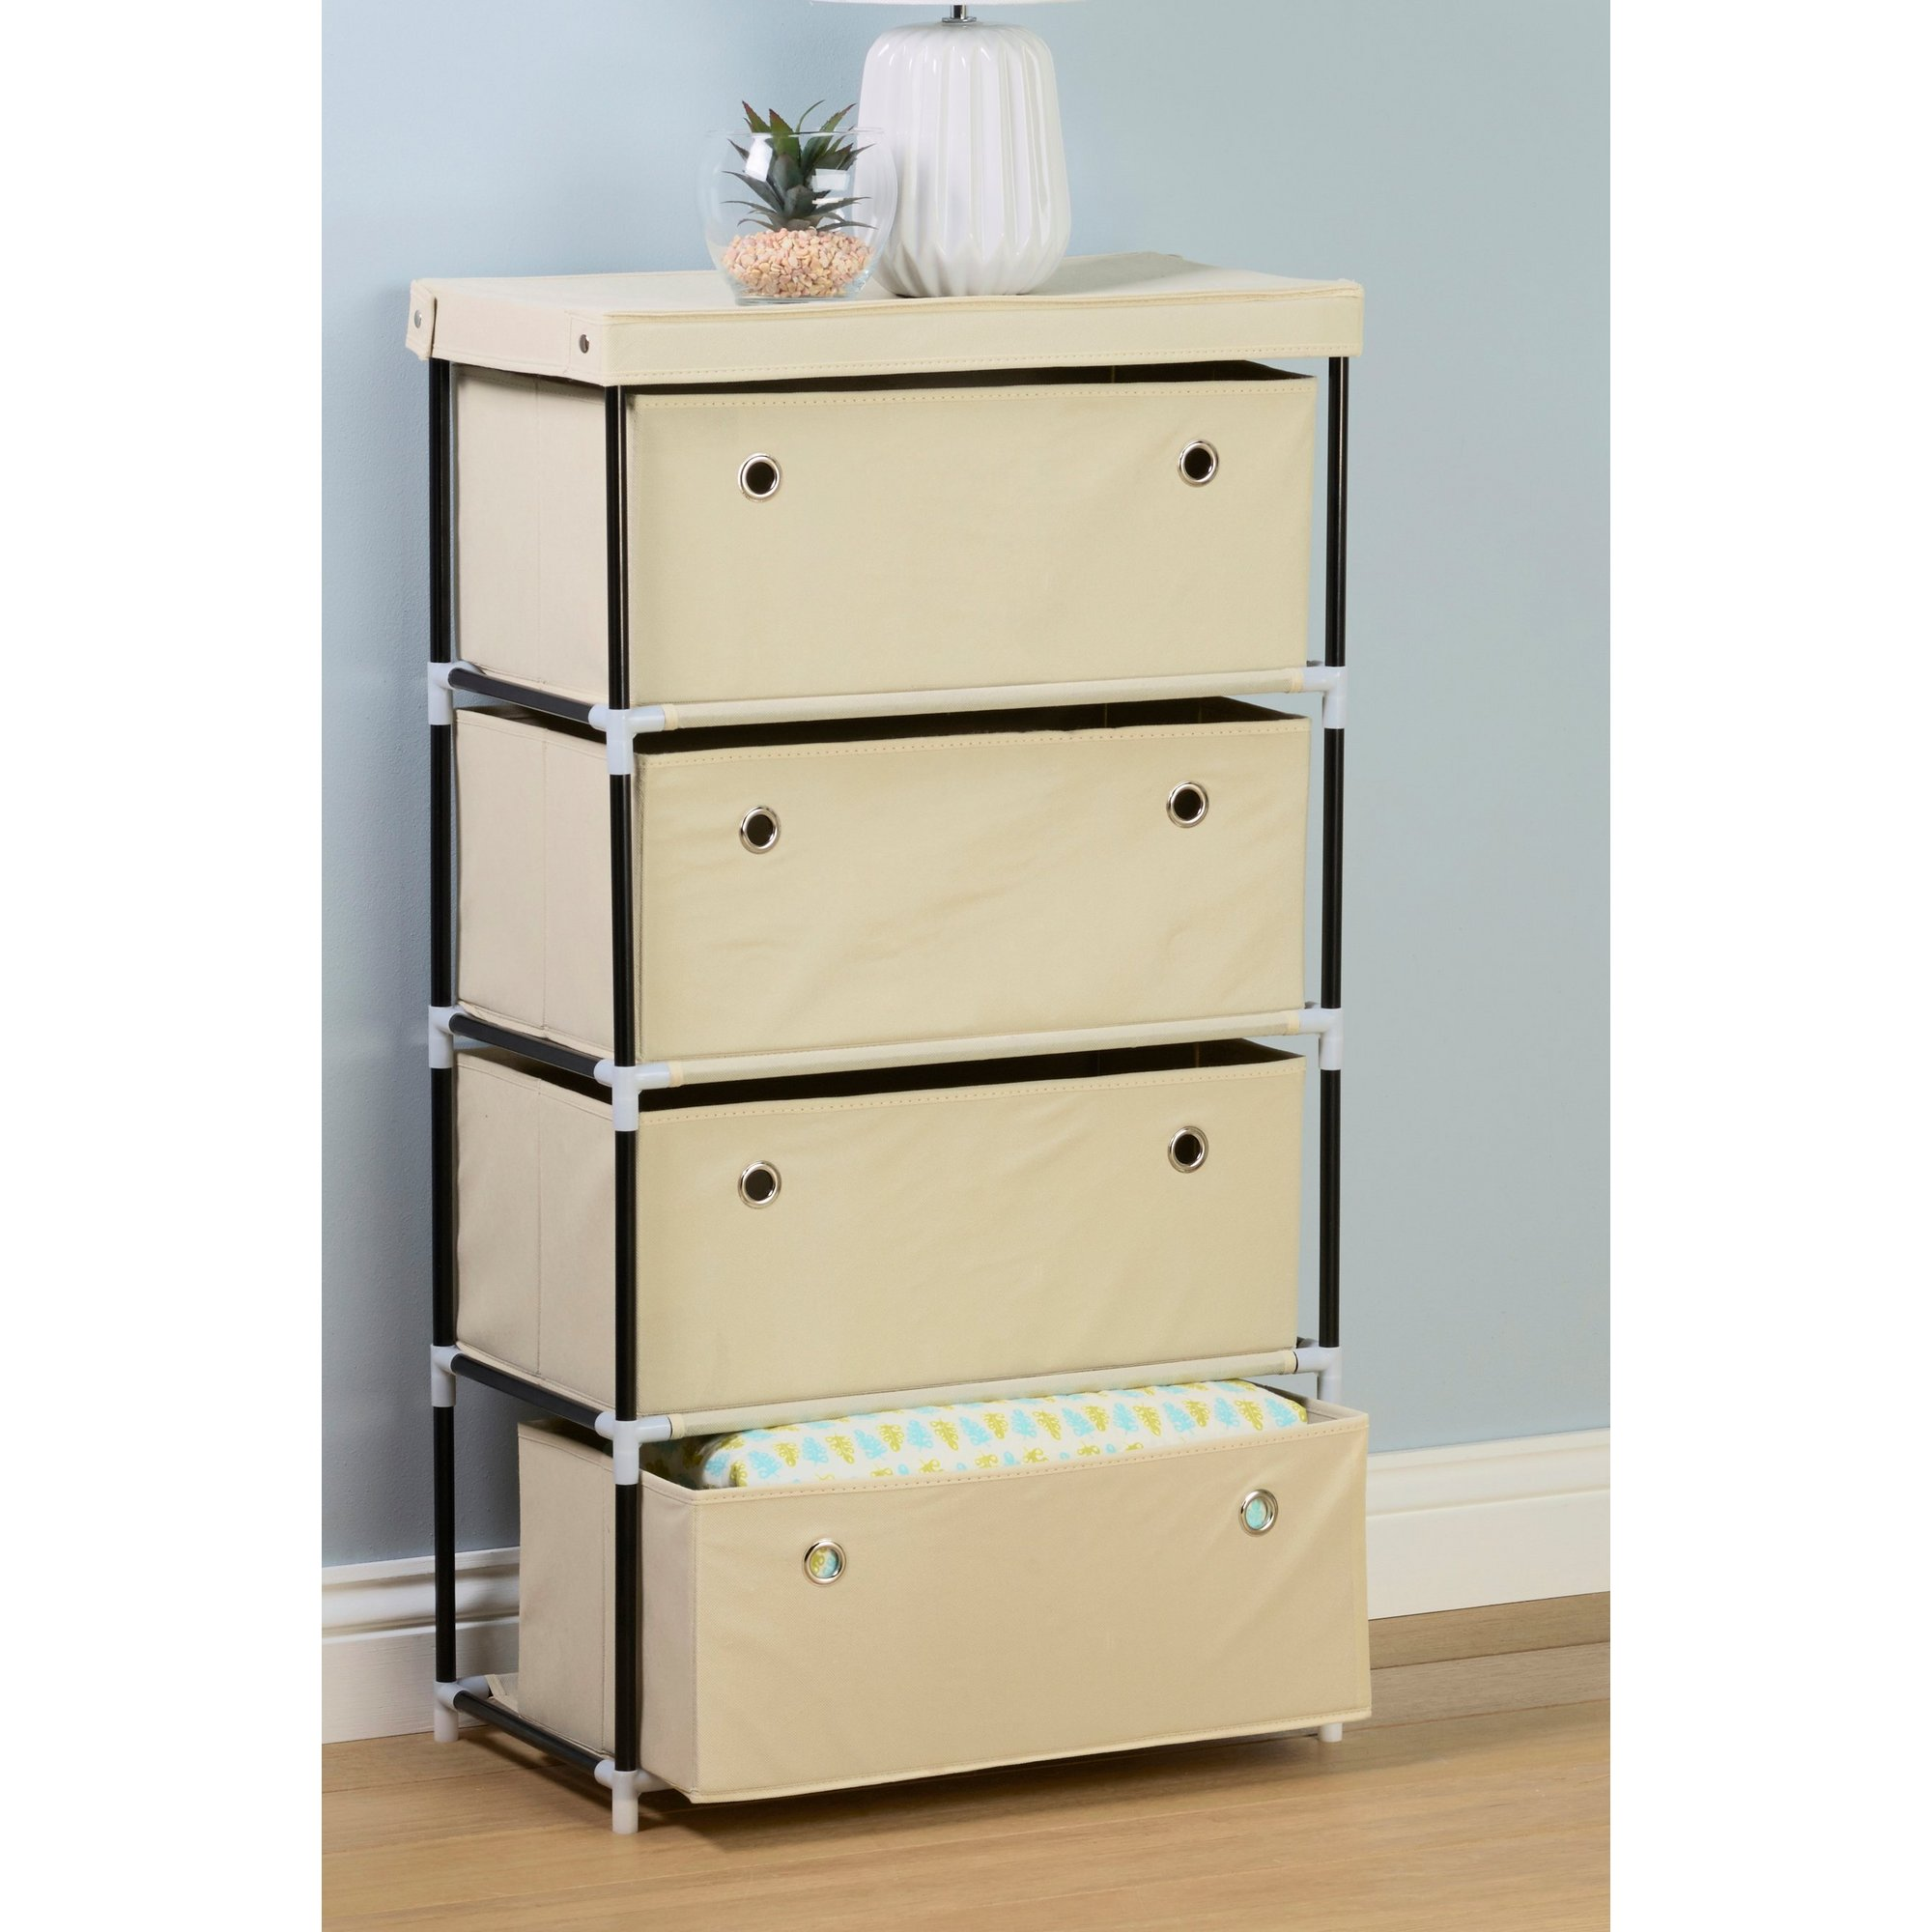 Image of 4-Drawer Cabinet